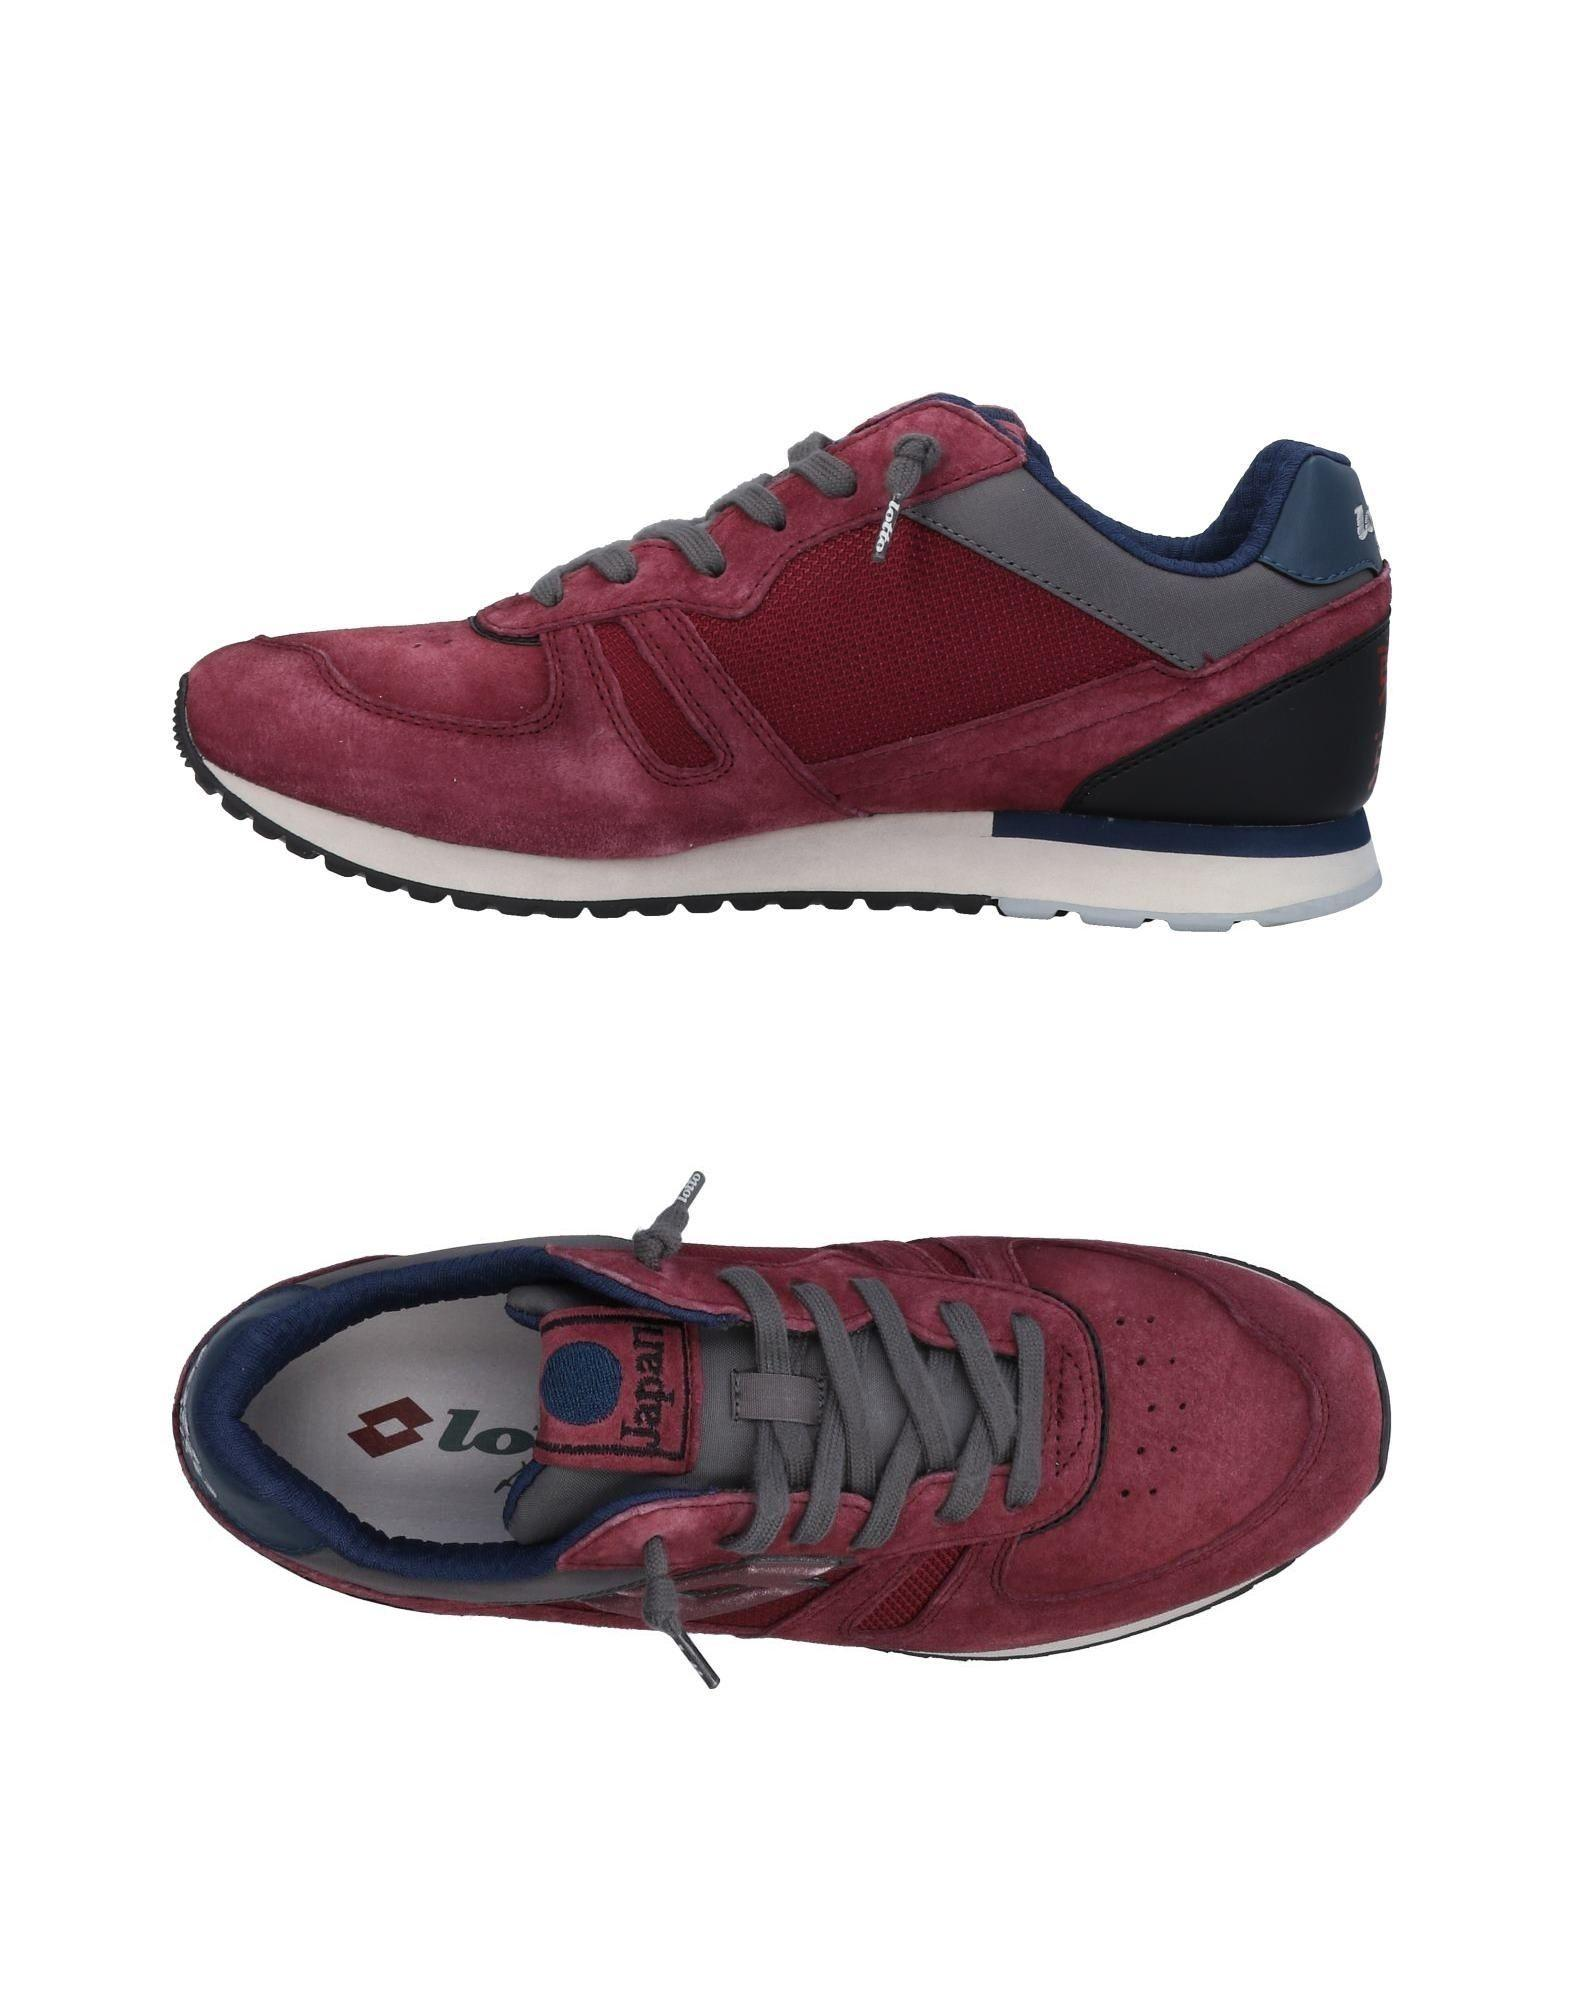 Lotto Leggenda Sneakers In Garnet